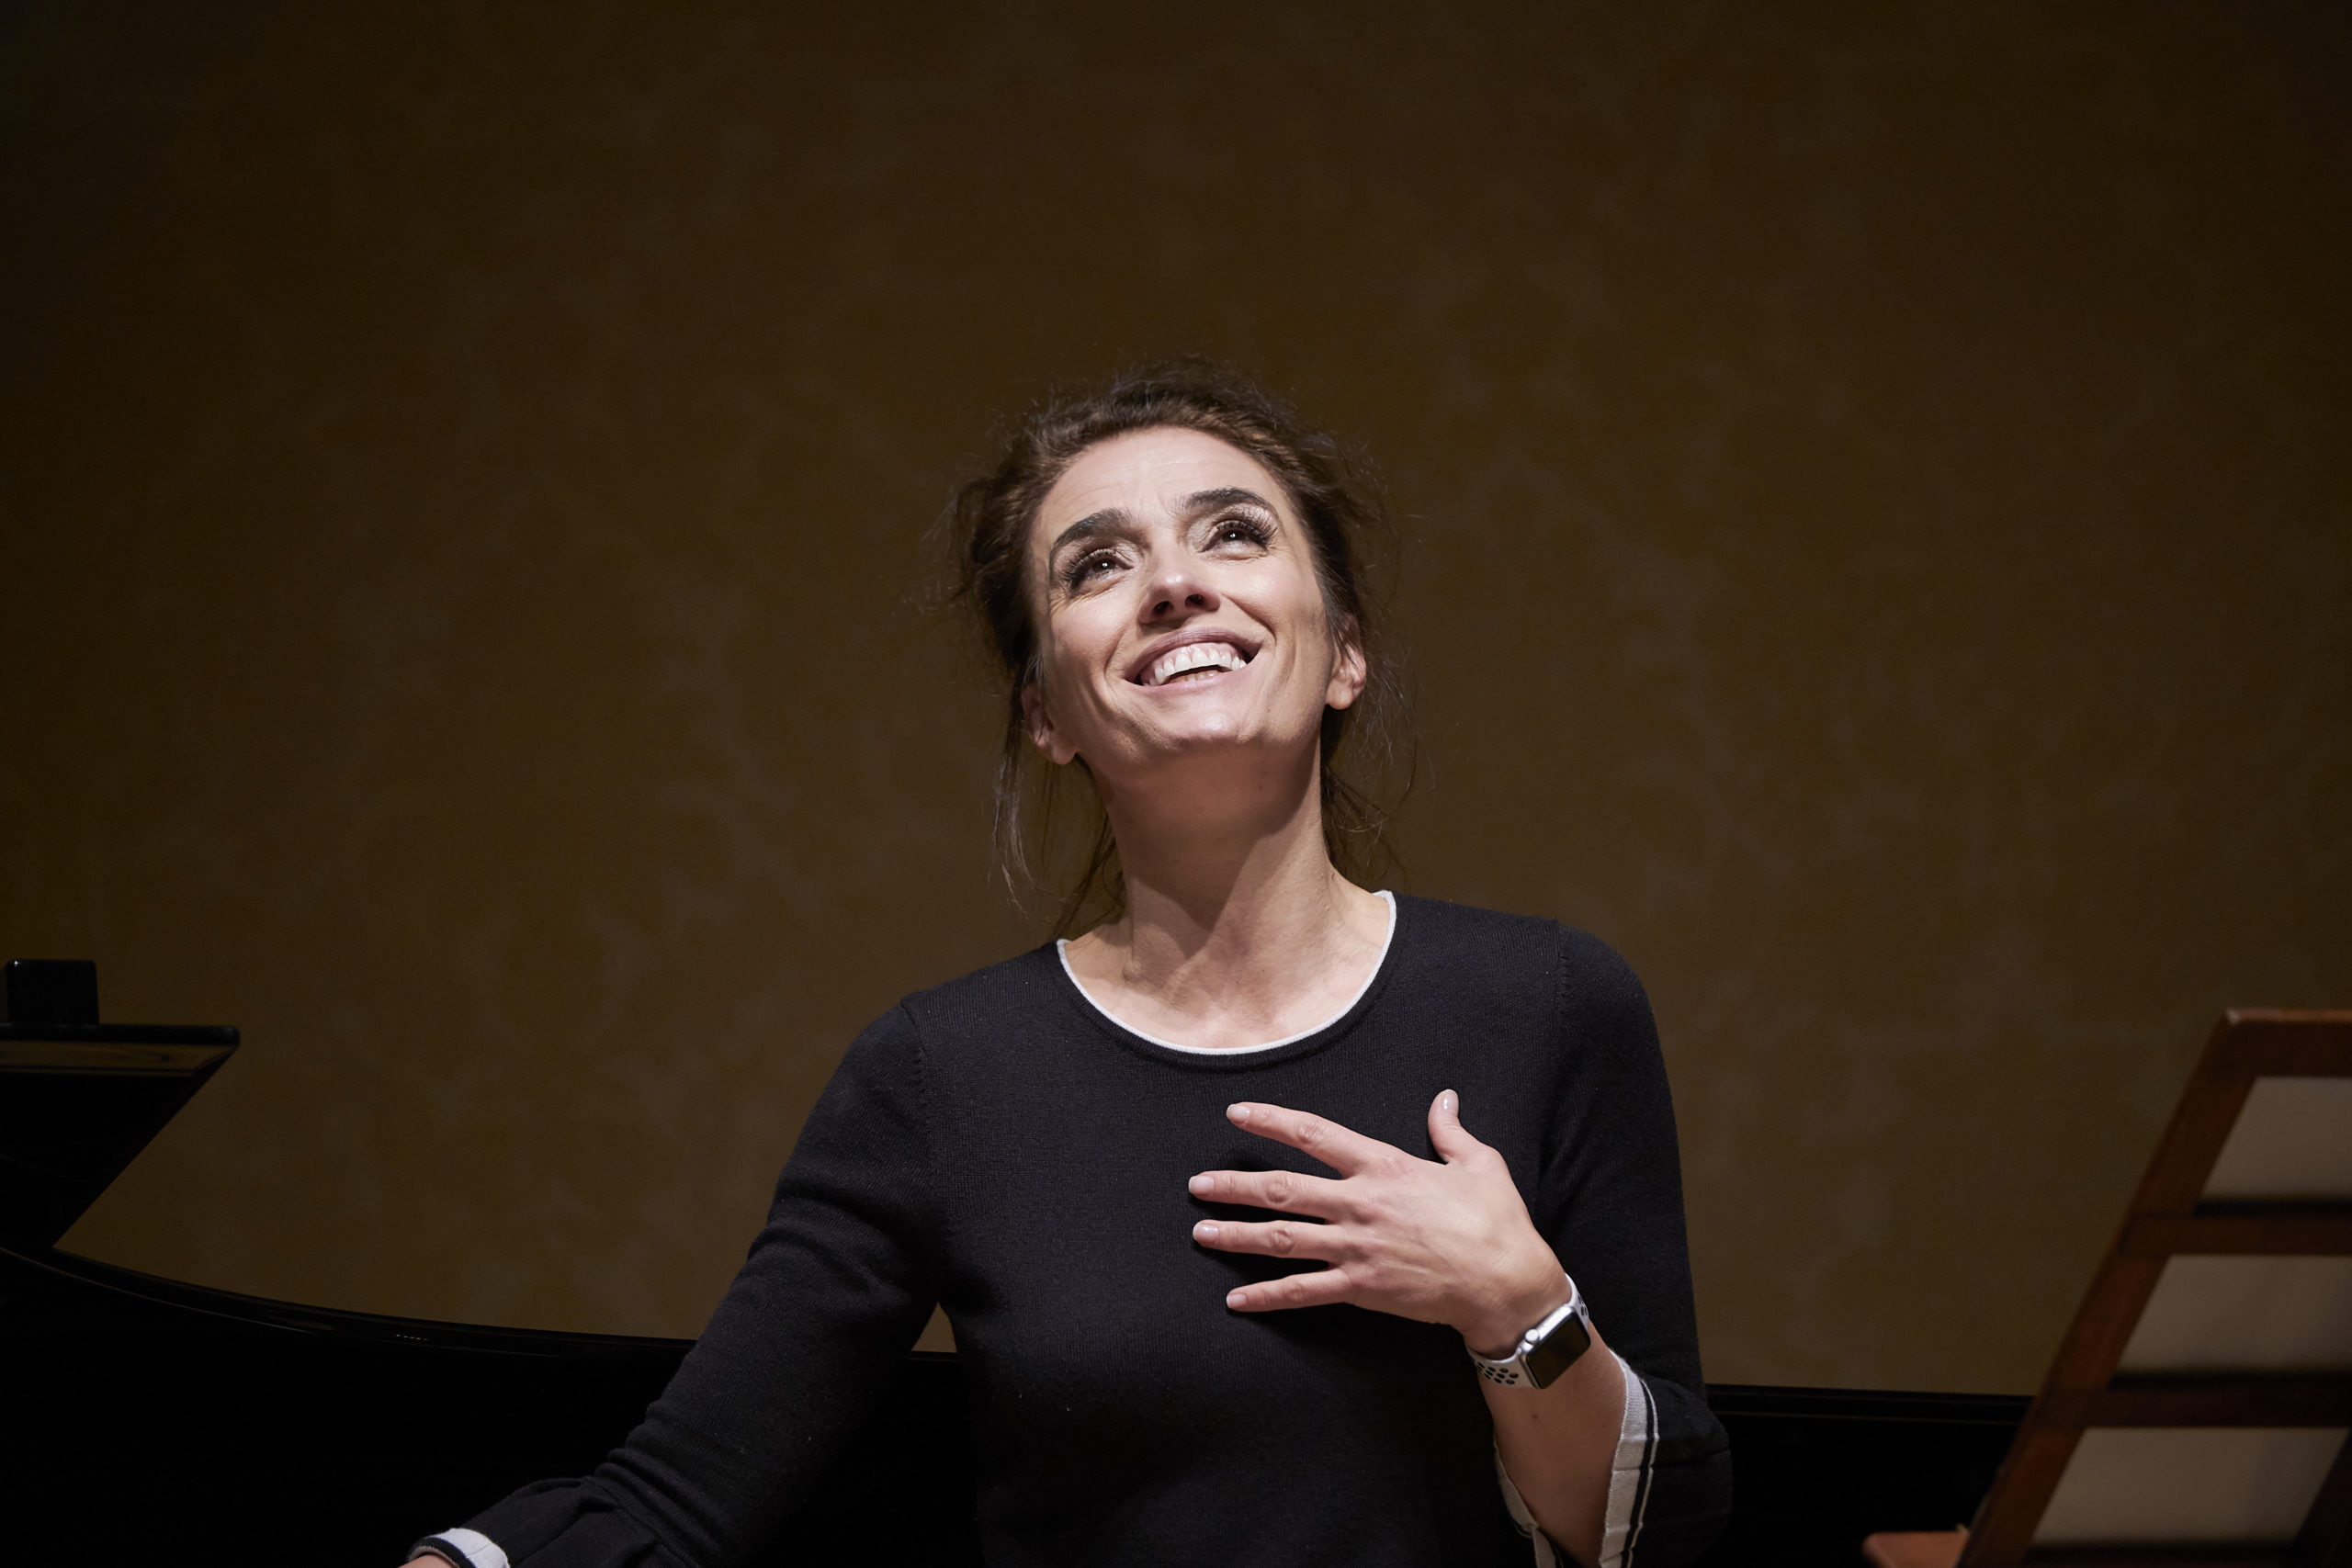 """Ermonela Jaho: """"Singing Is The Language Of Our Souls"""" - The Opera Queen"""